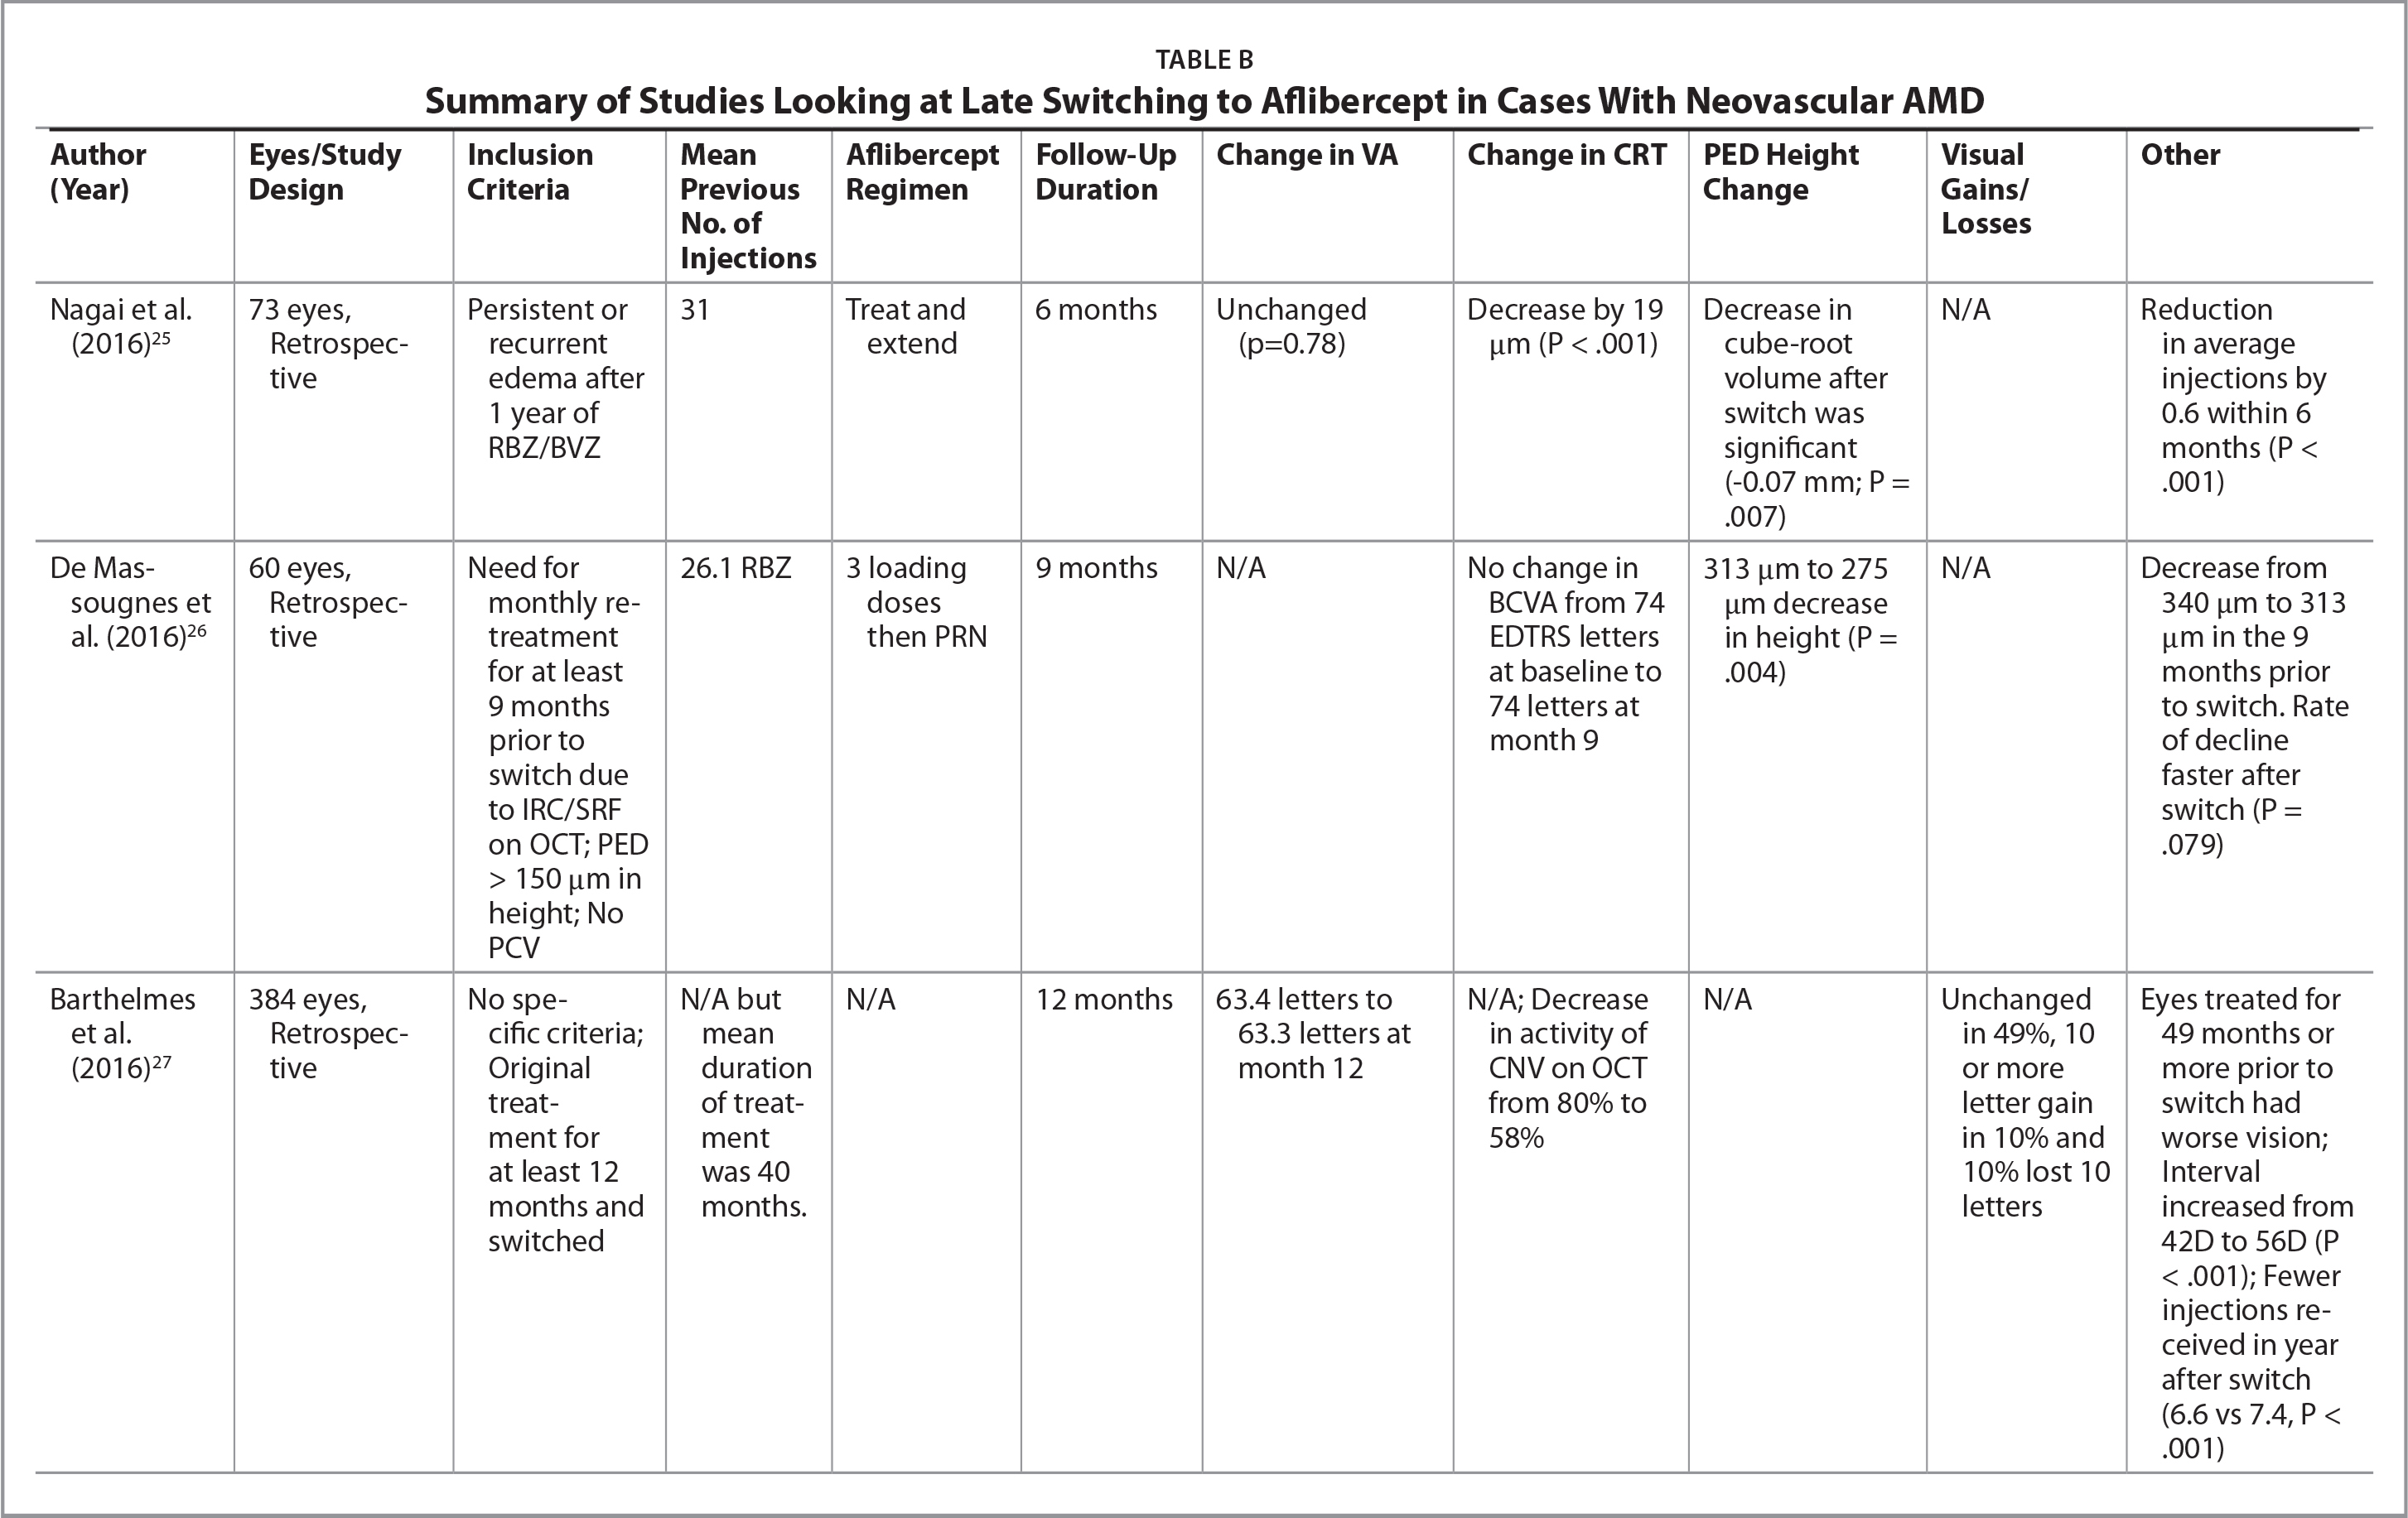 Summary of Studies Looking at Late Switching to Aflibercept in Cases With Neovascular AMD